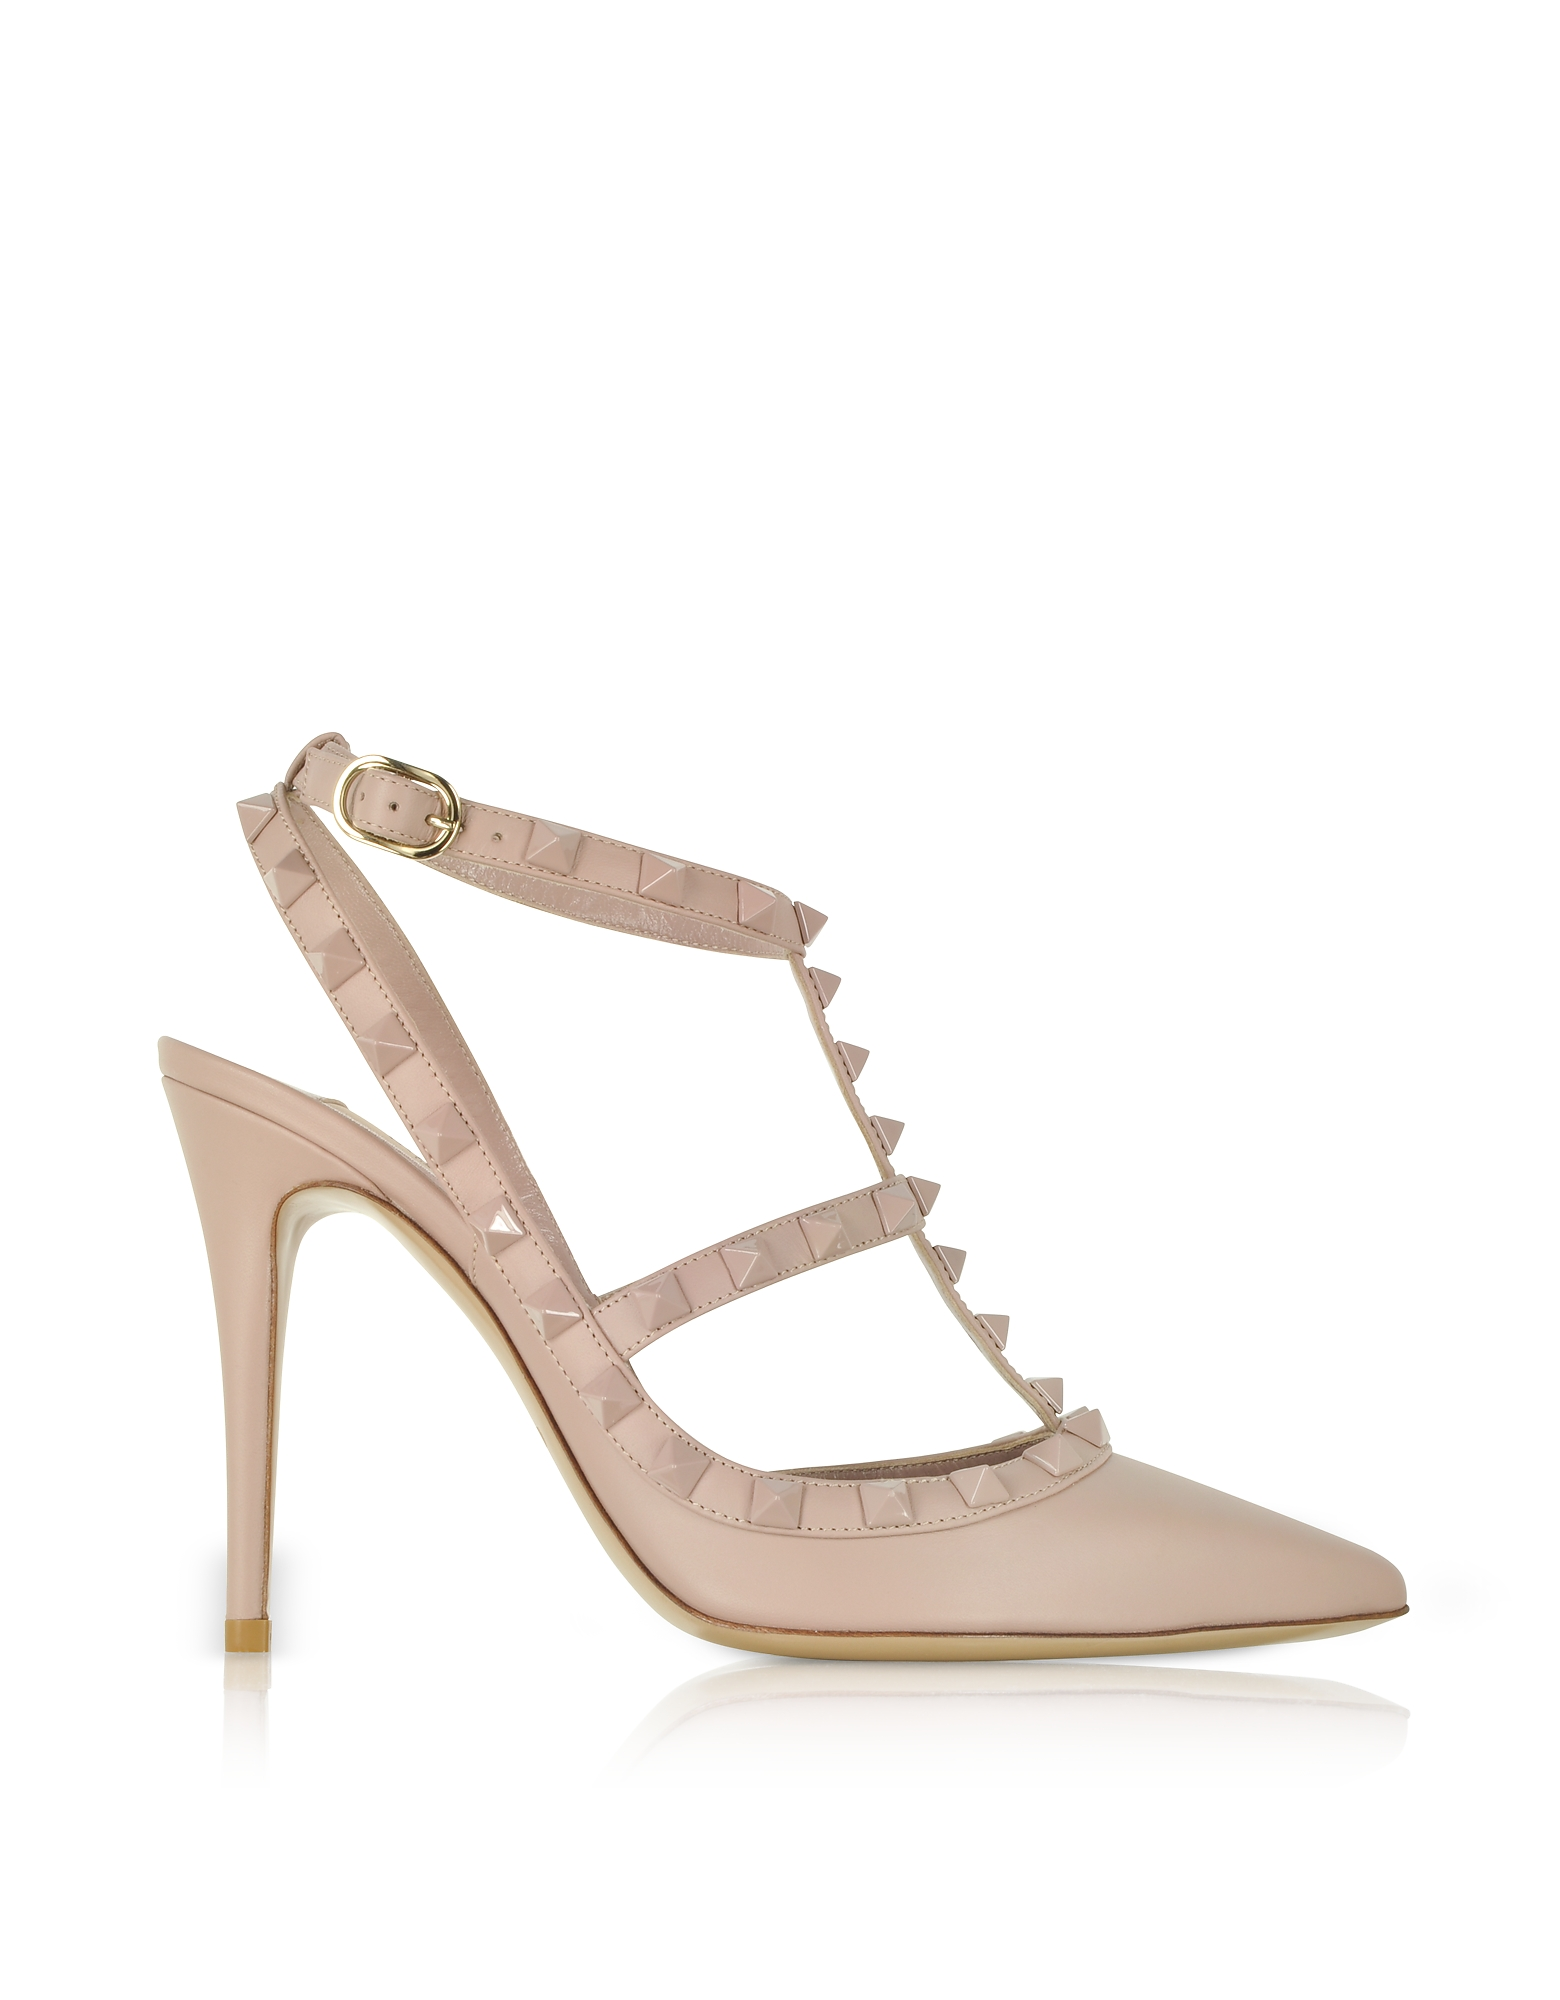 Valentino Shoes, Poudre Leather Rockstud Pumps